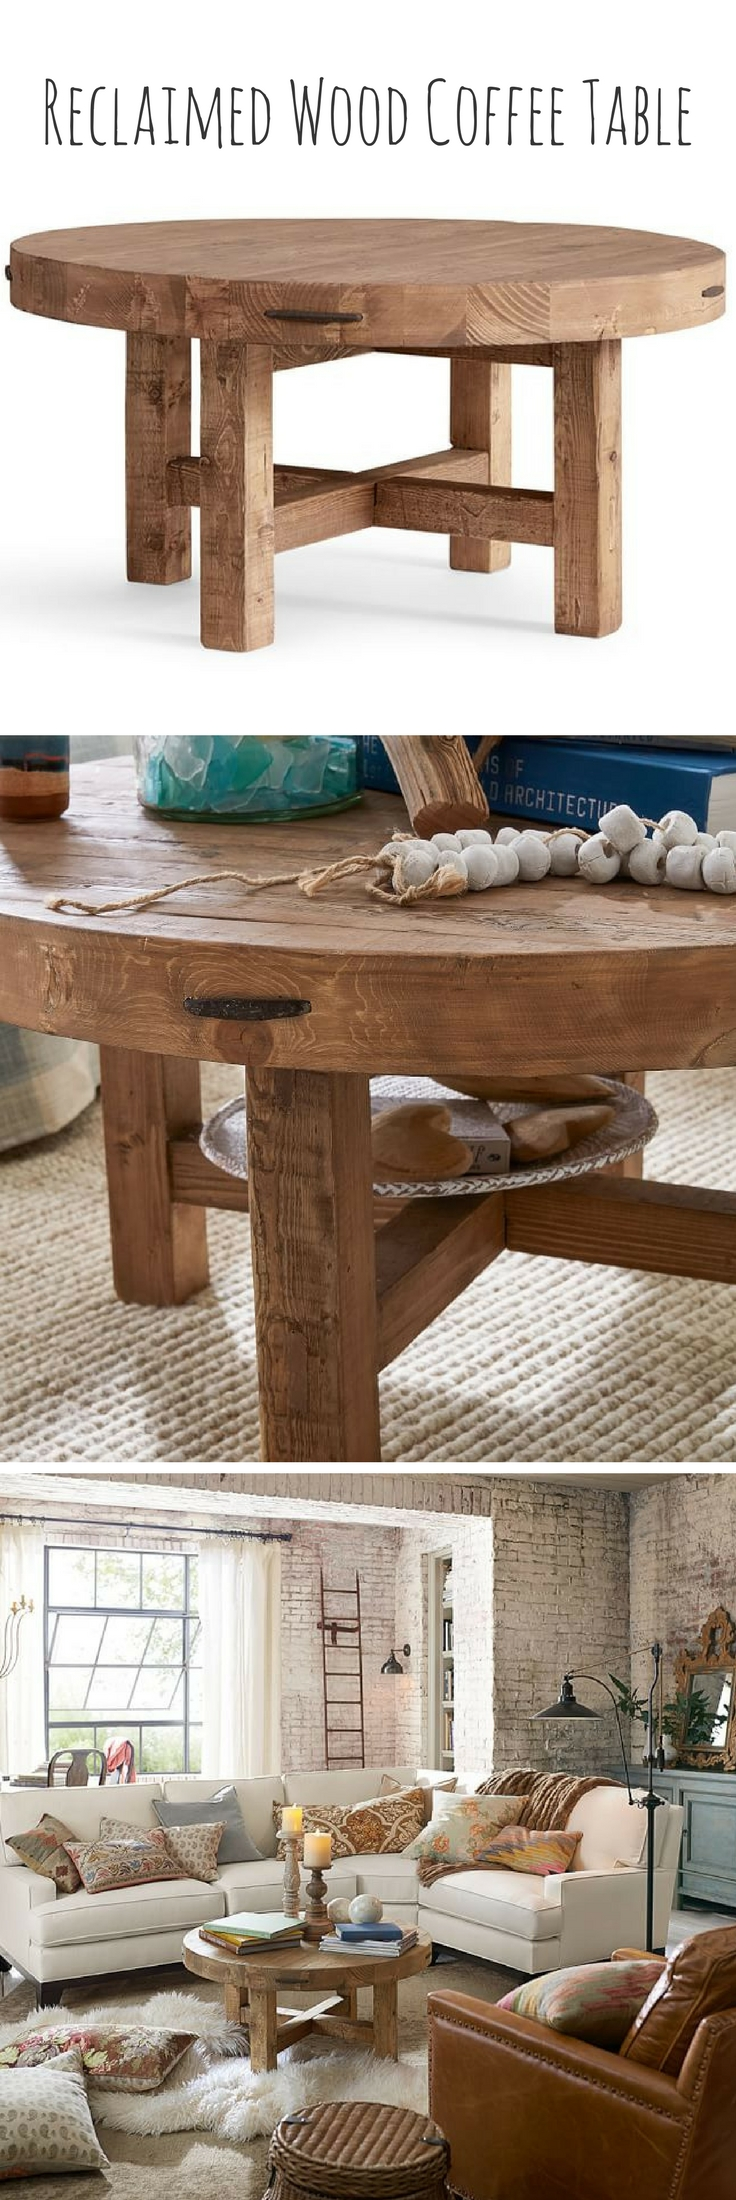 Reclaimed Barn Wood Coffee Table 36 Round 48 Round Coffee Table Wood Round Wood Coffee Table Reclaimed Coffee Table [ 1200 x 1798 Pixel ]